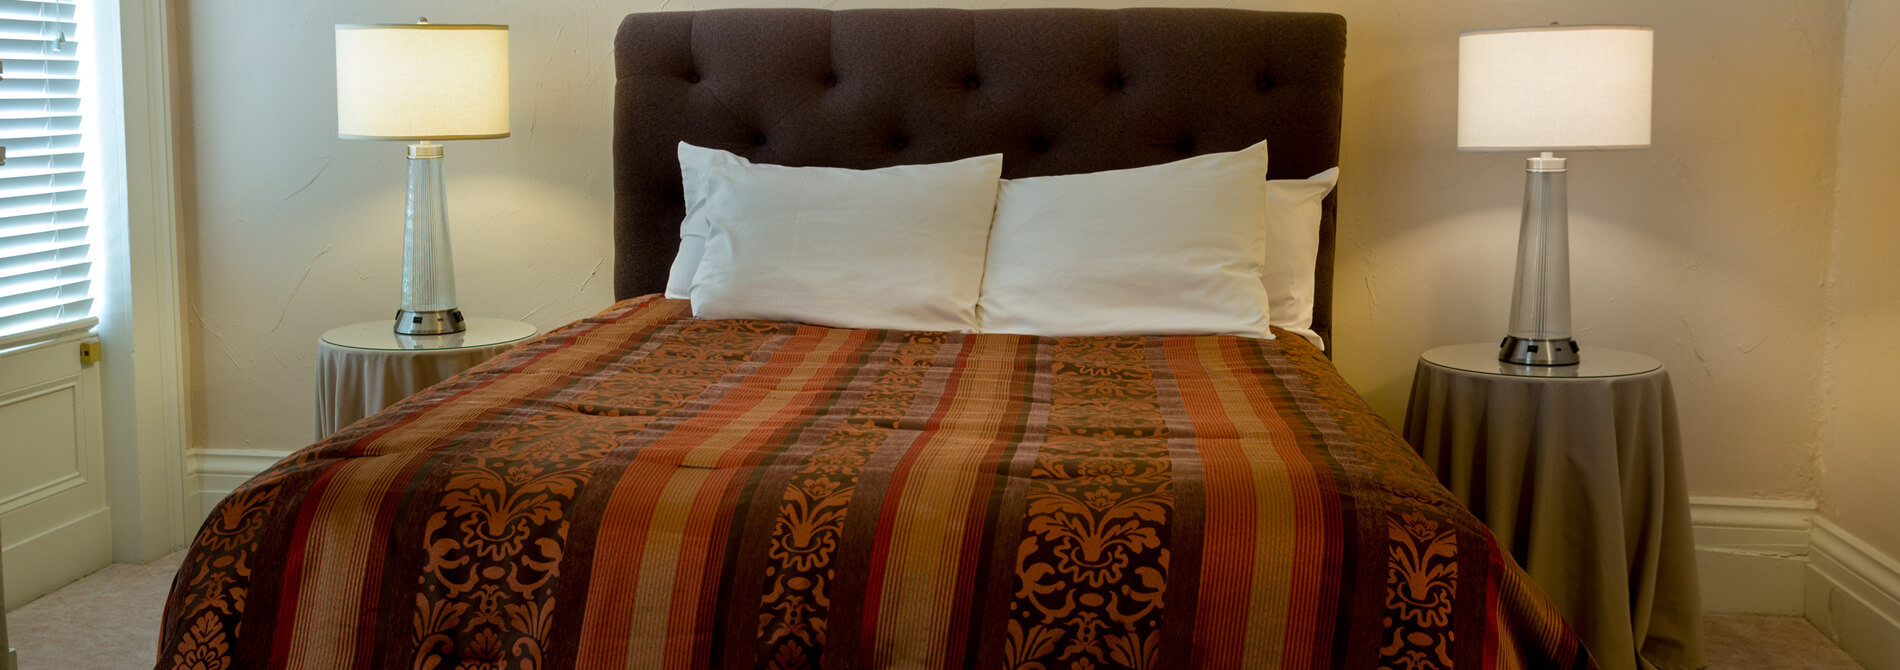 modern bed in sleek bedroom with brown striped comforter and two end tables with lamps